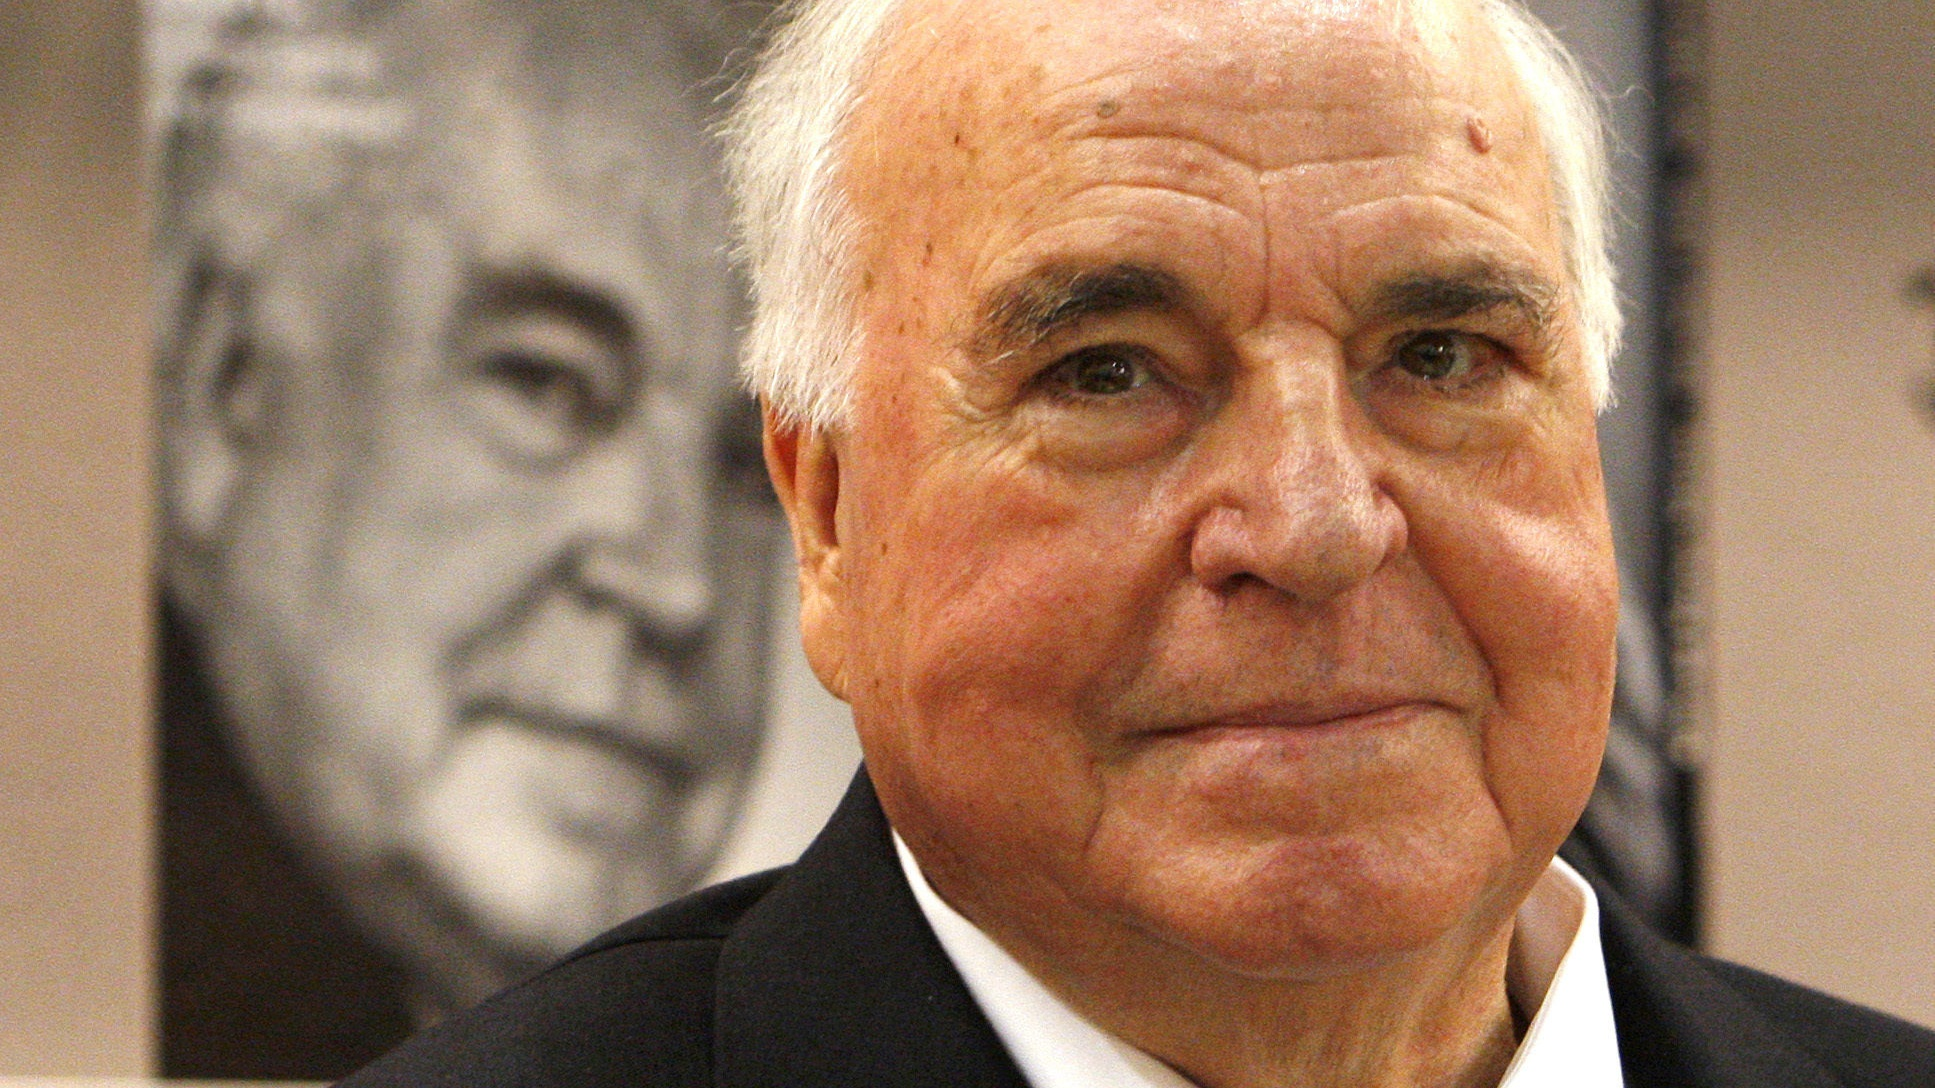 Helmut Kohl, Chancellor Who Reunified Germany, Dies